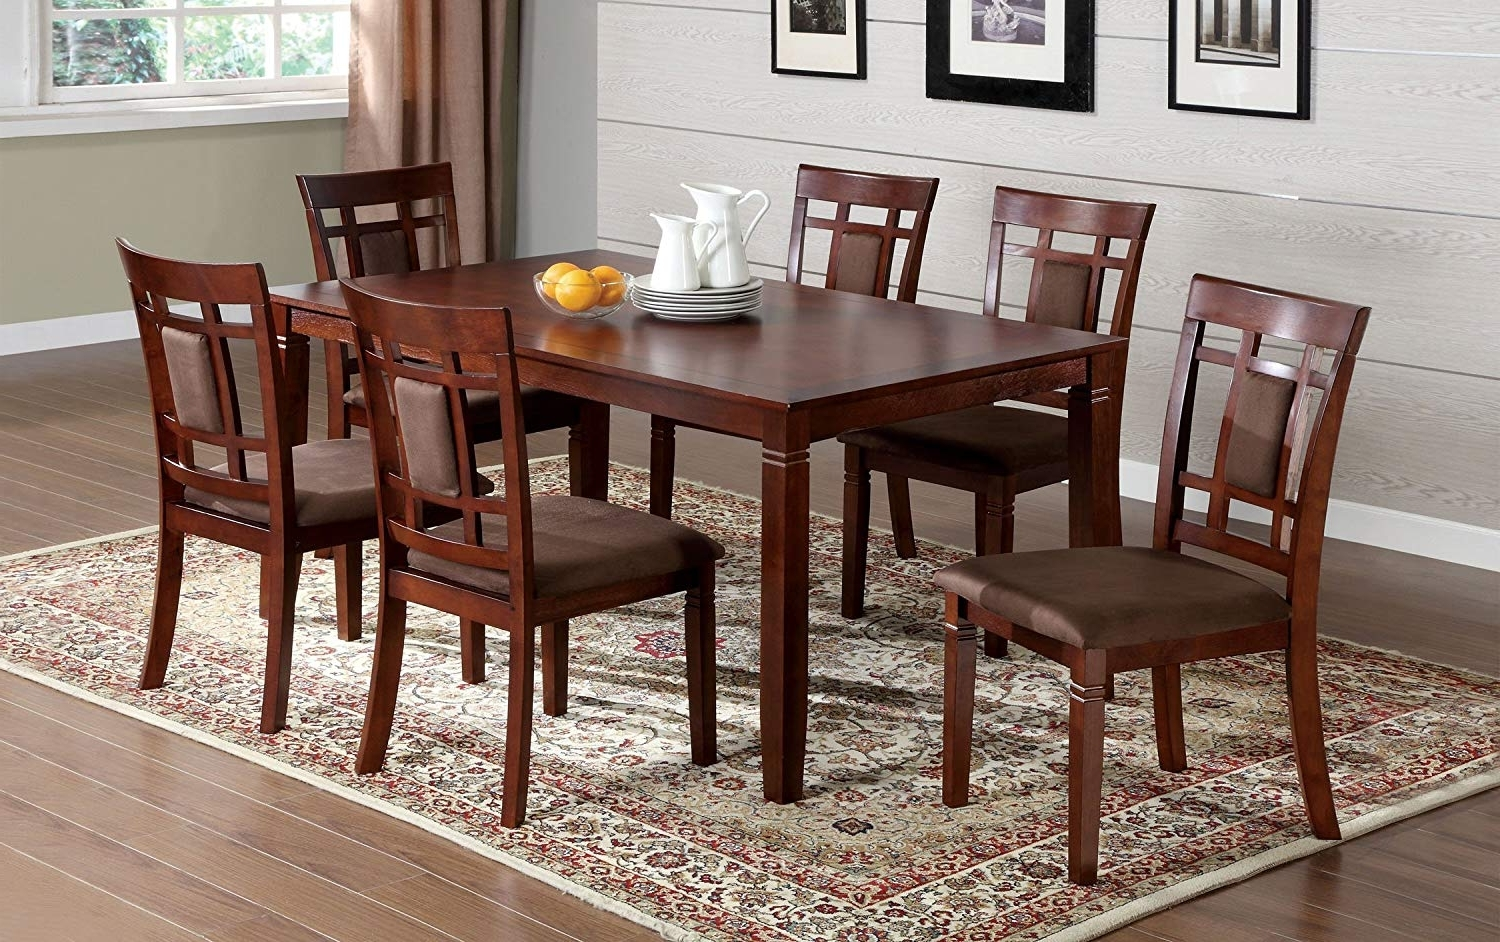 2017 Amazon - Furniture Of America Cartiere 7-Piece Dining Table Set with regard to Dark Wood Dining Tables And 6 Chairs